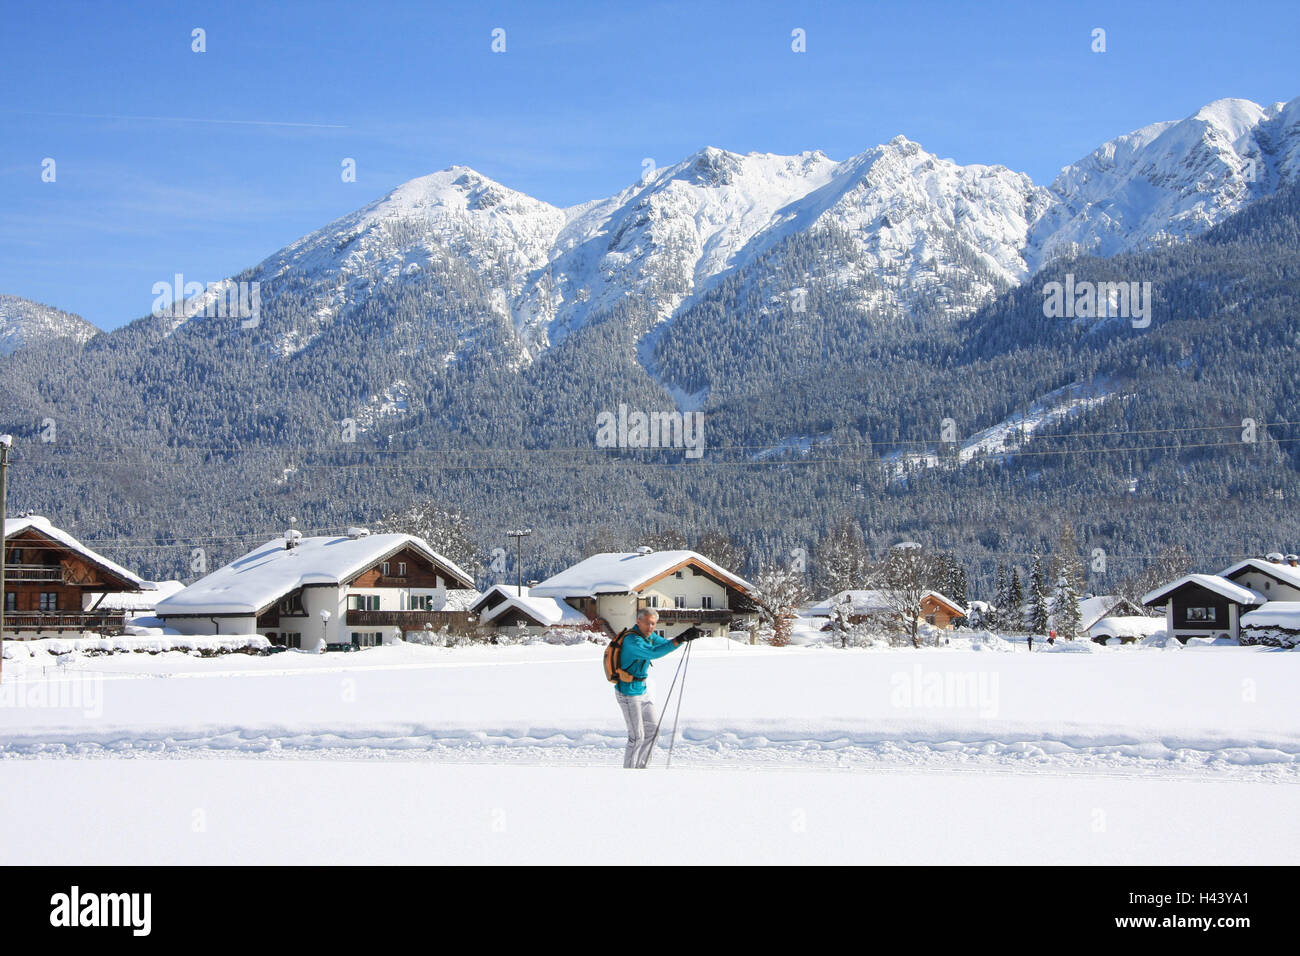 Germany, Bavaria, Werdenfels, embankment region, local view, to Soiern, cross-country trail, cross-country skier, - Stock Image